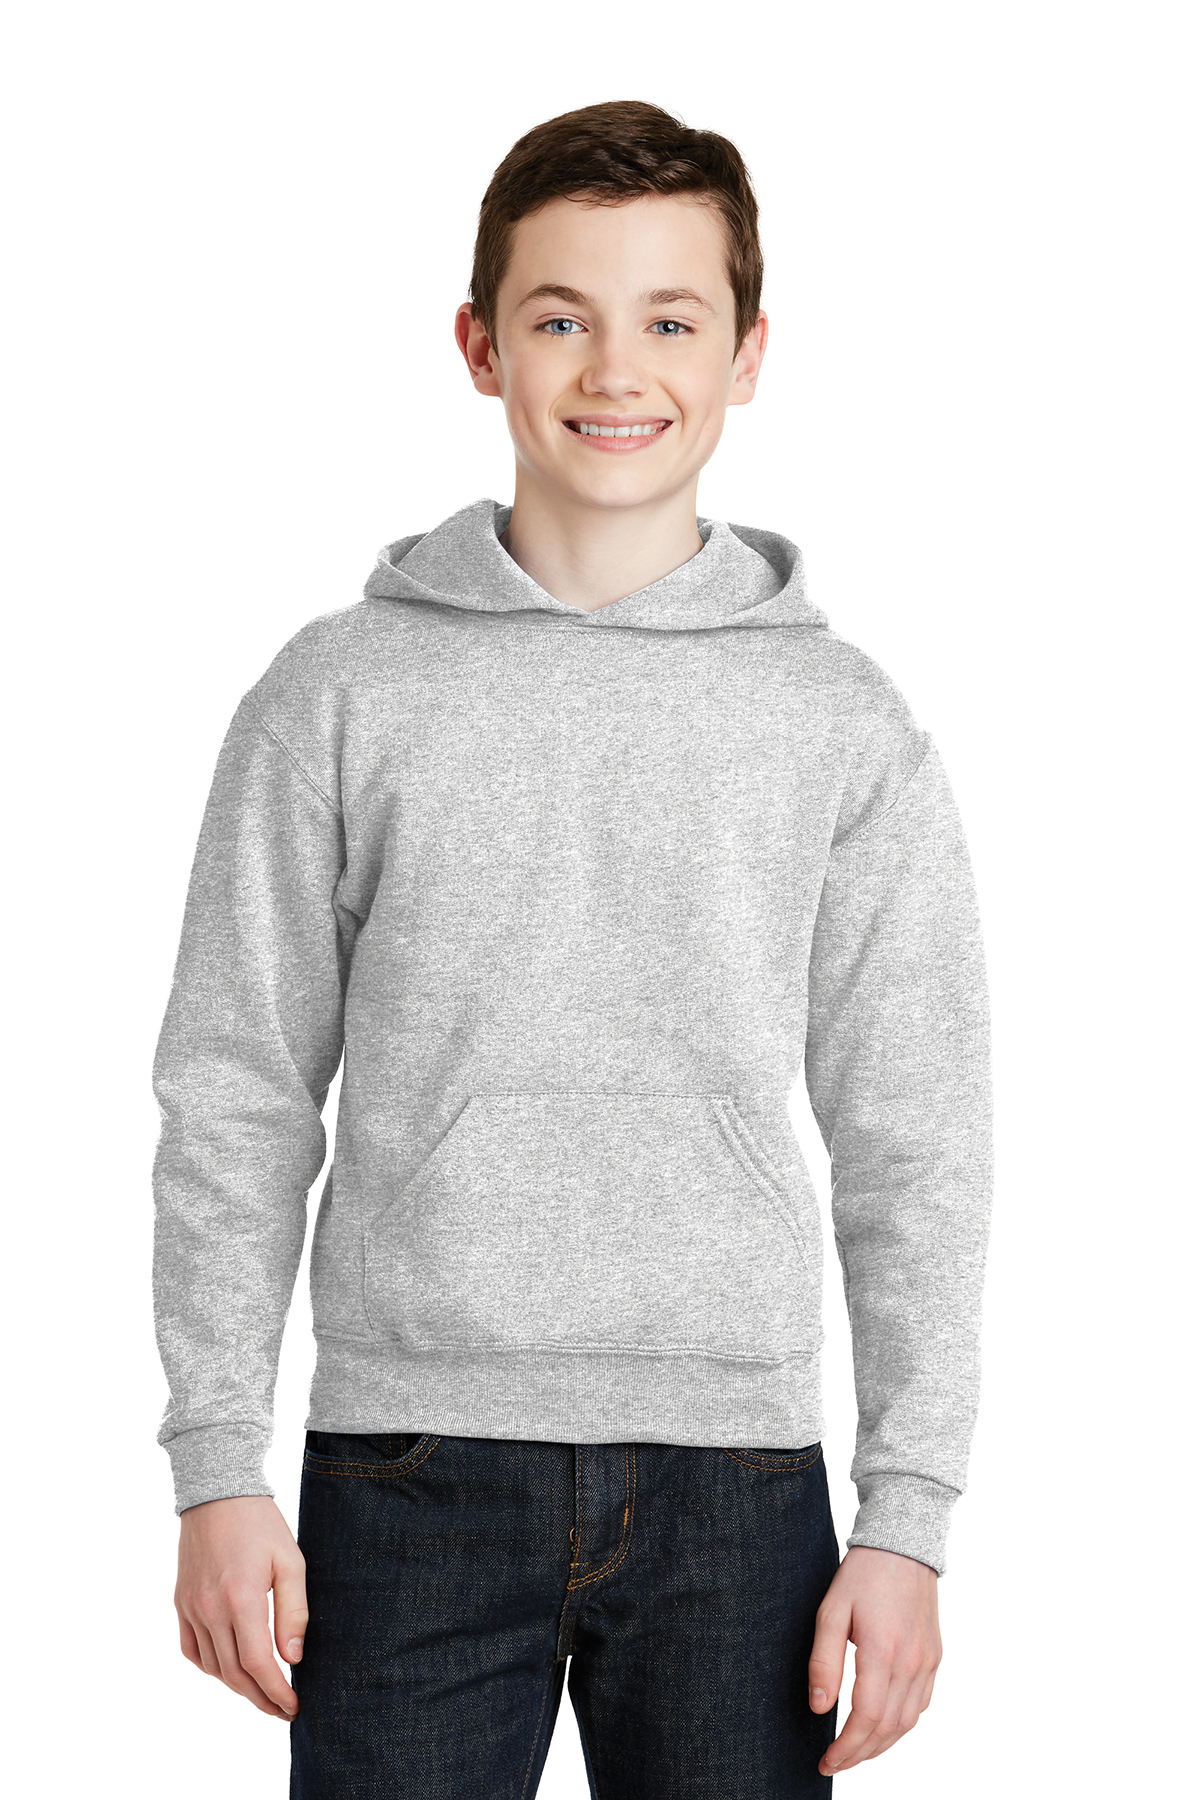 a494d72f8b2 JERZEES® - Youth NuBlend® Pullover Hooded Sweatshirt